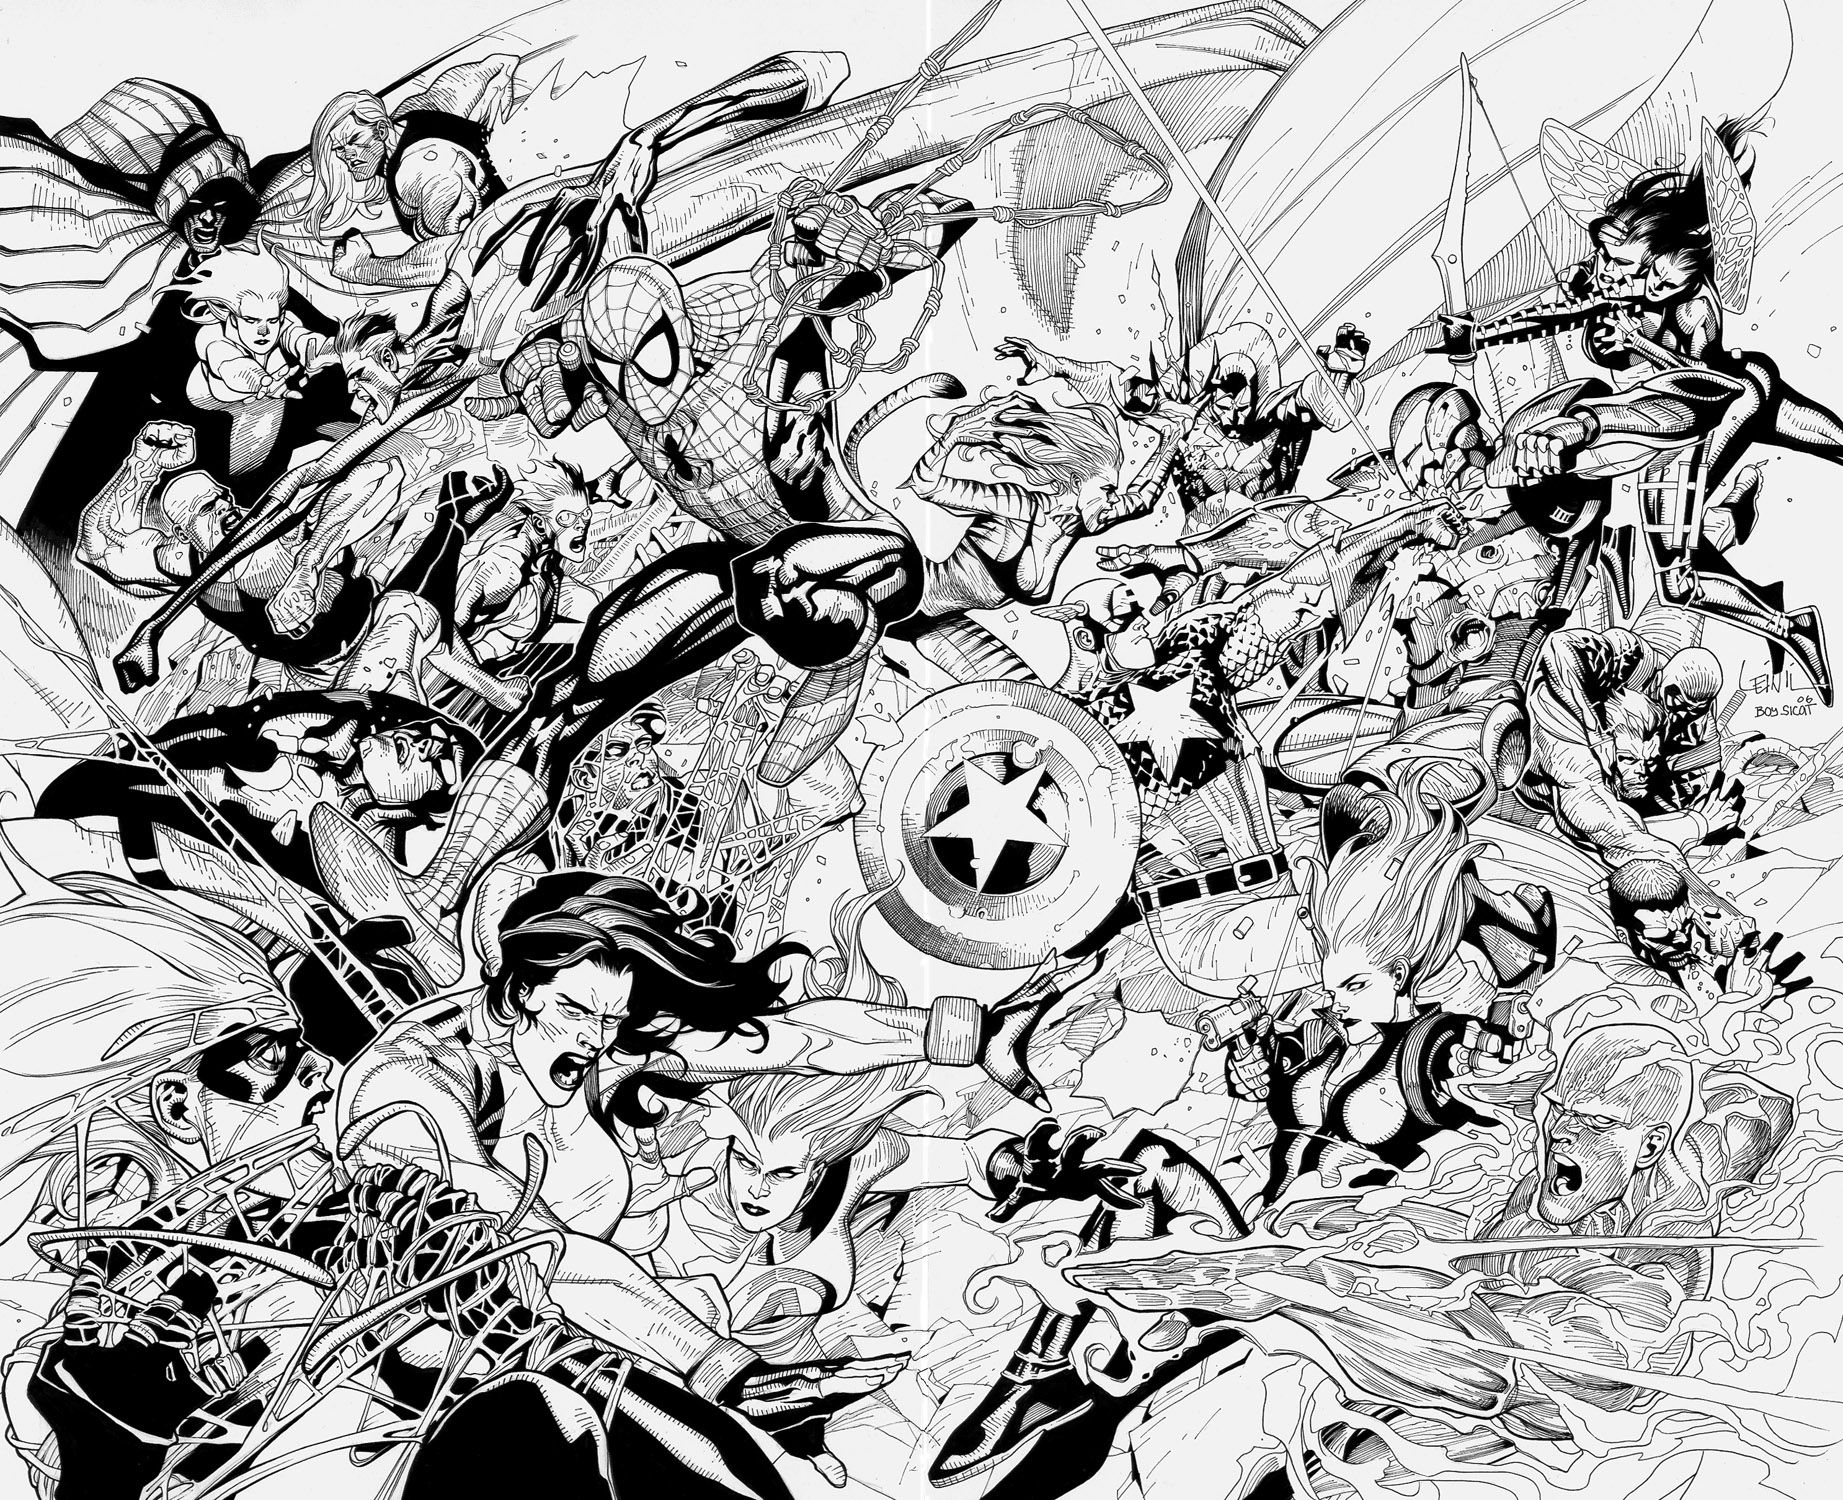 avengers-coloring-pages_1185921.jpg (1843×1500) | COLORING BOOKS ...